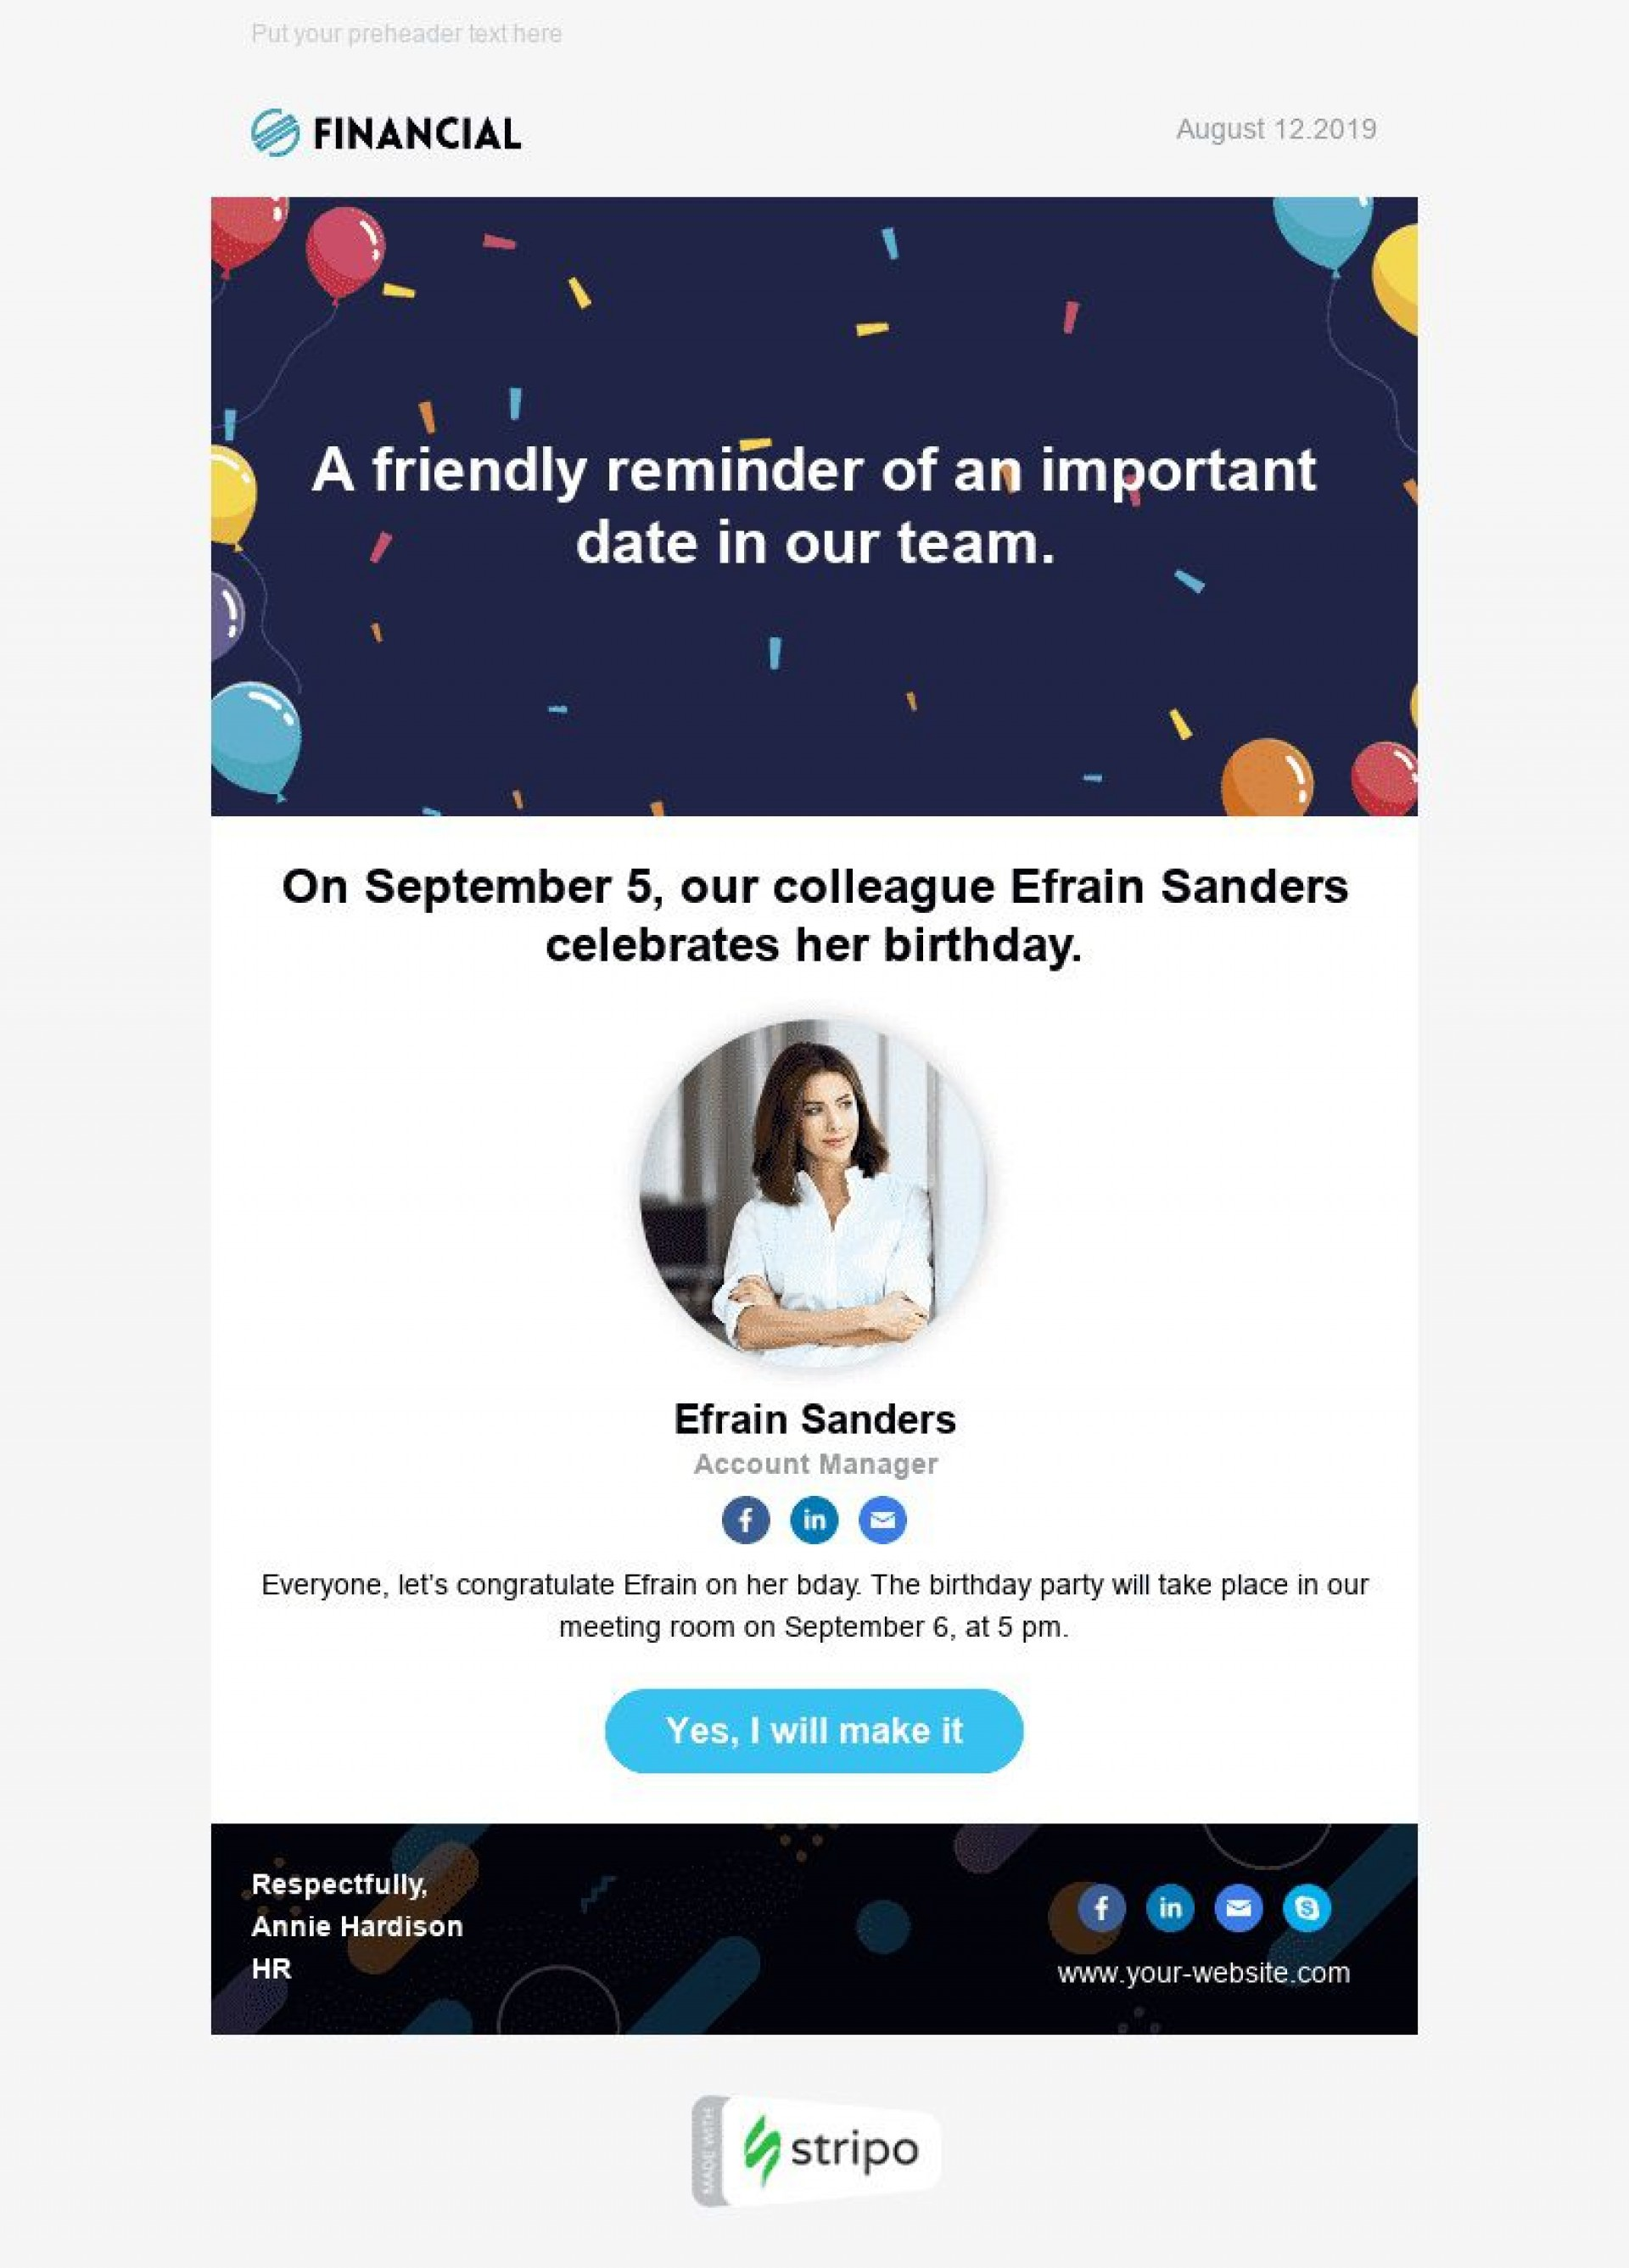 006 Stunning Happy Birthday Email Template High Definition  Html To Employee Corporate1920